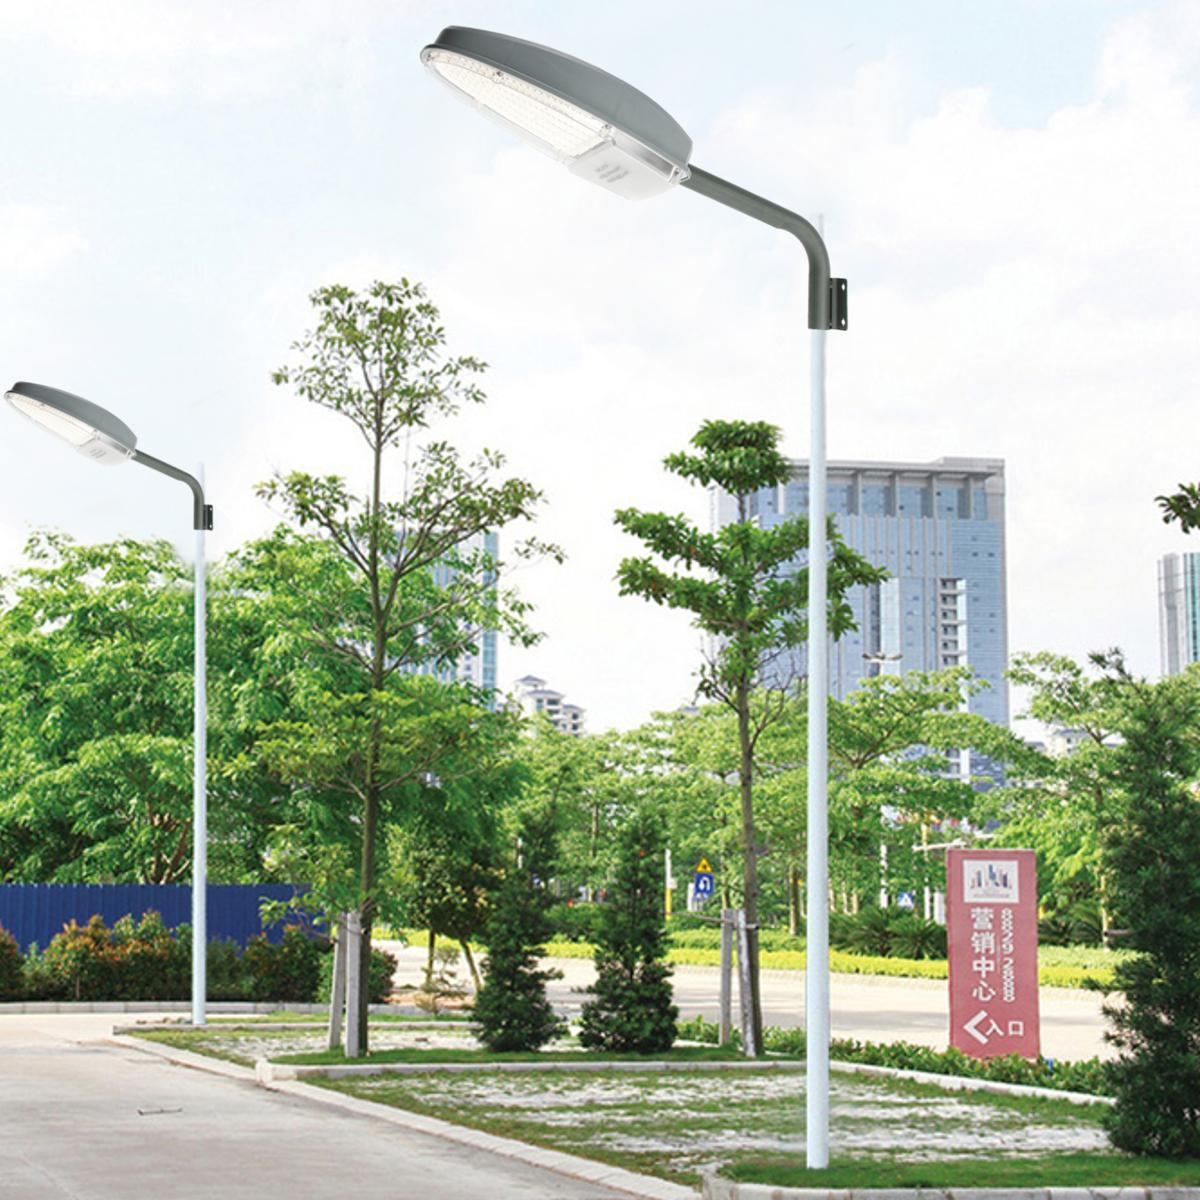 24W Photocontrol Light Sensor Road LED Street Light Floodlight Outdoor Yard LED Garden Lamp With Mounting Arm 2400LM AC85-265V 50w 100w150w led street light ac85 265v waterproof ip65 streetlight led outdoor lighting garden road lamp